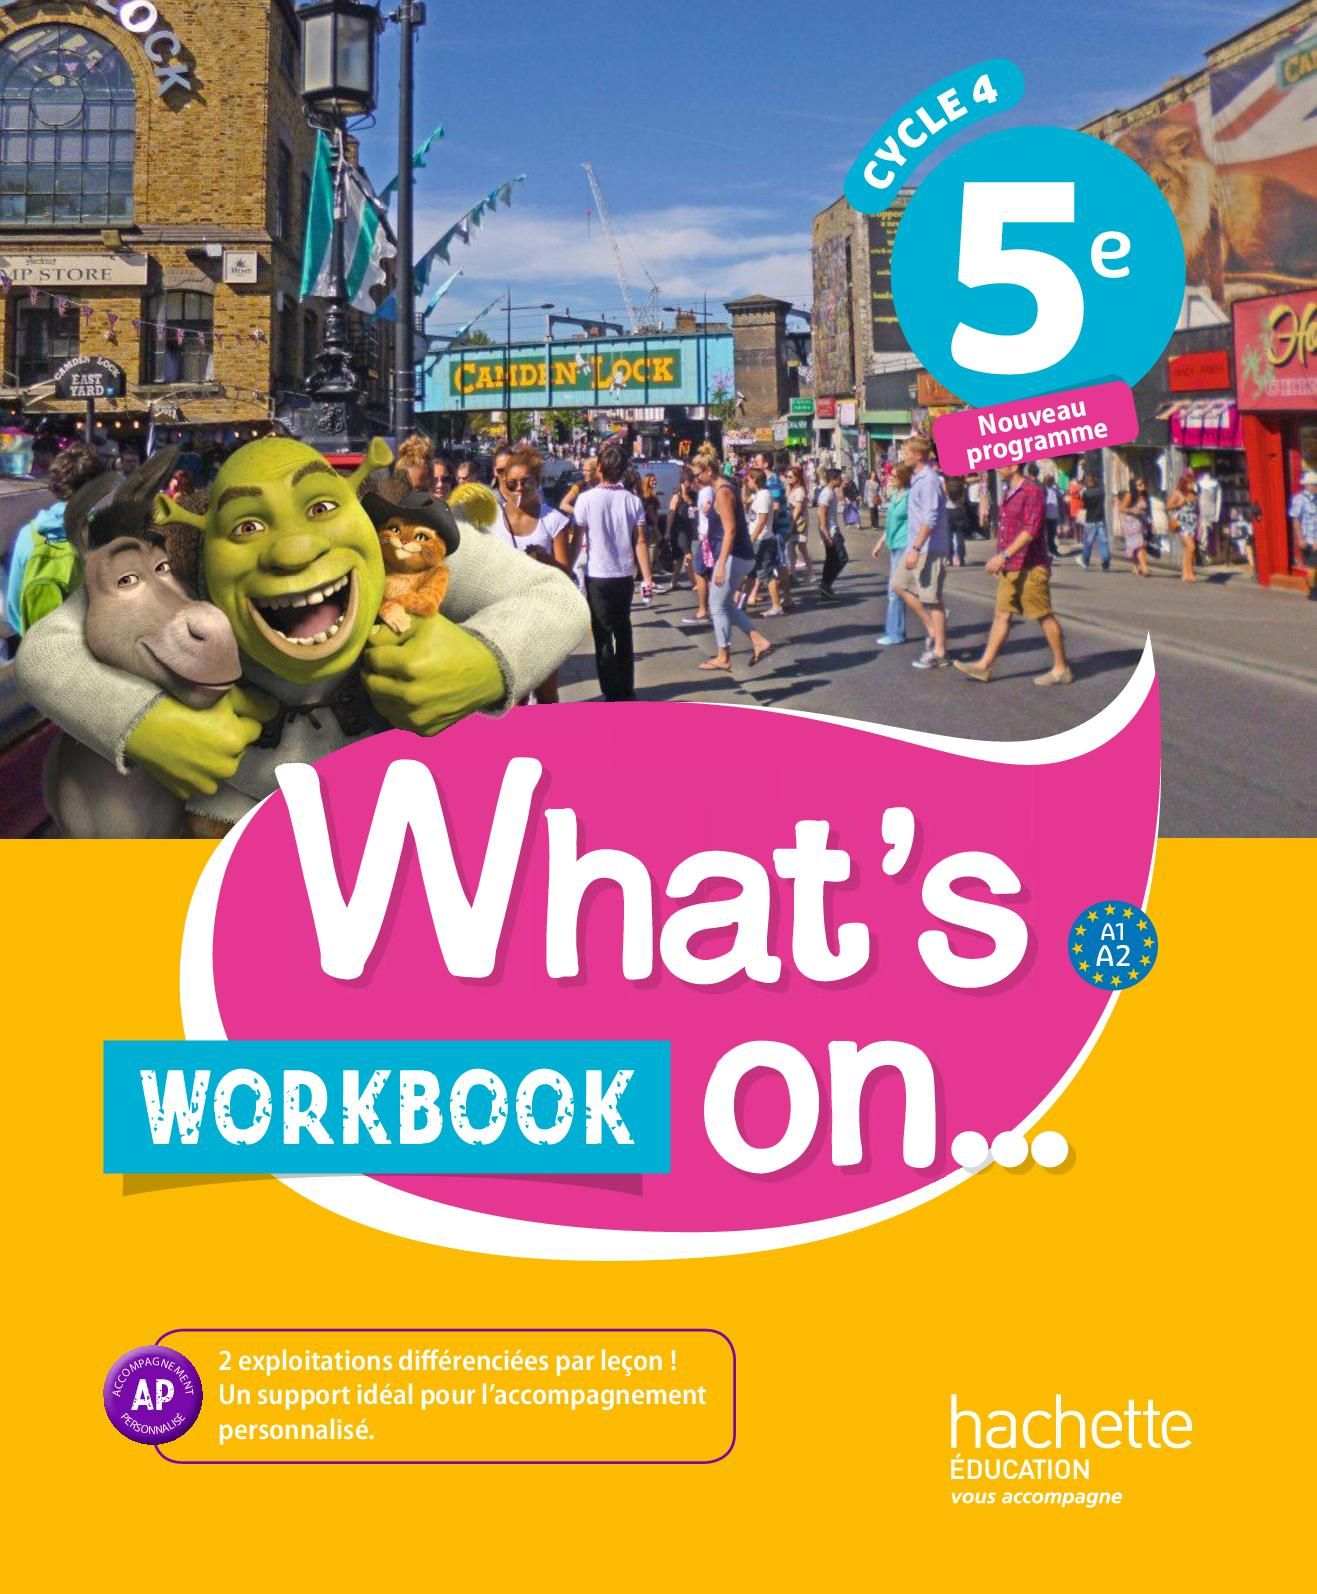 Elephant En Inde Signification calaméo - workbook what's on 5e - 2017